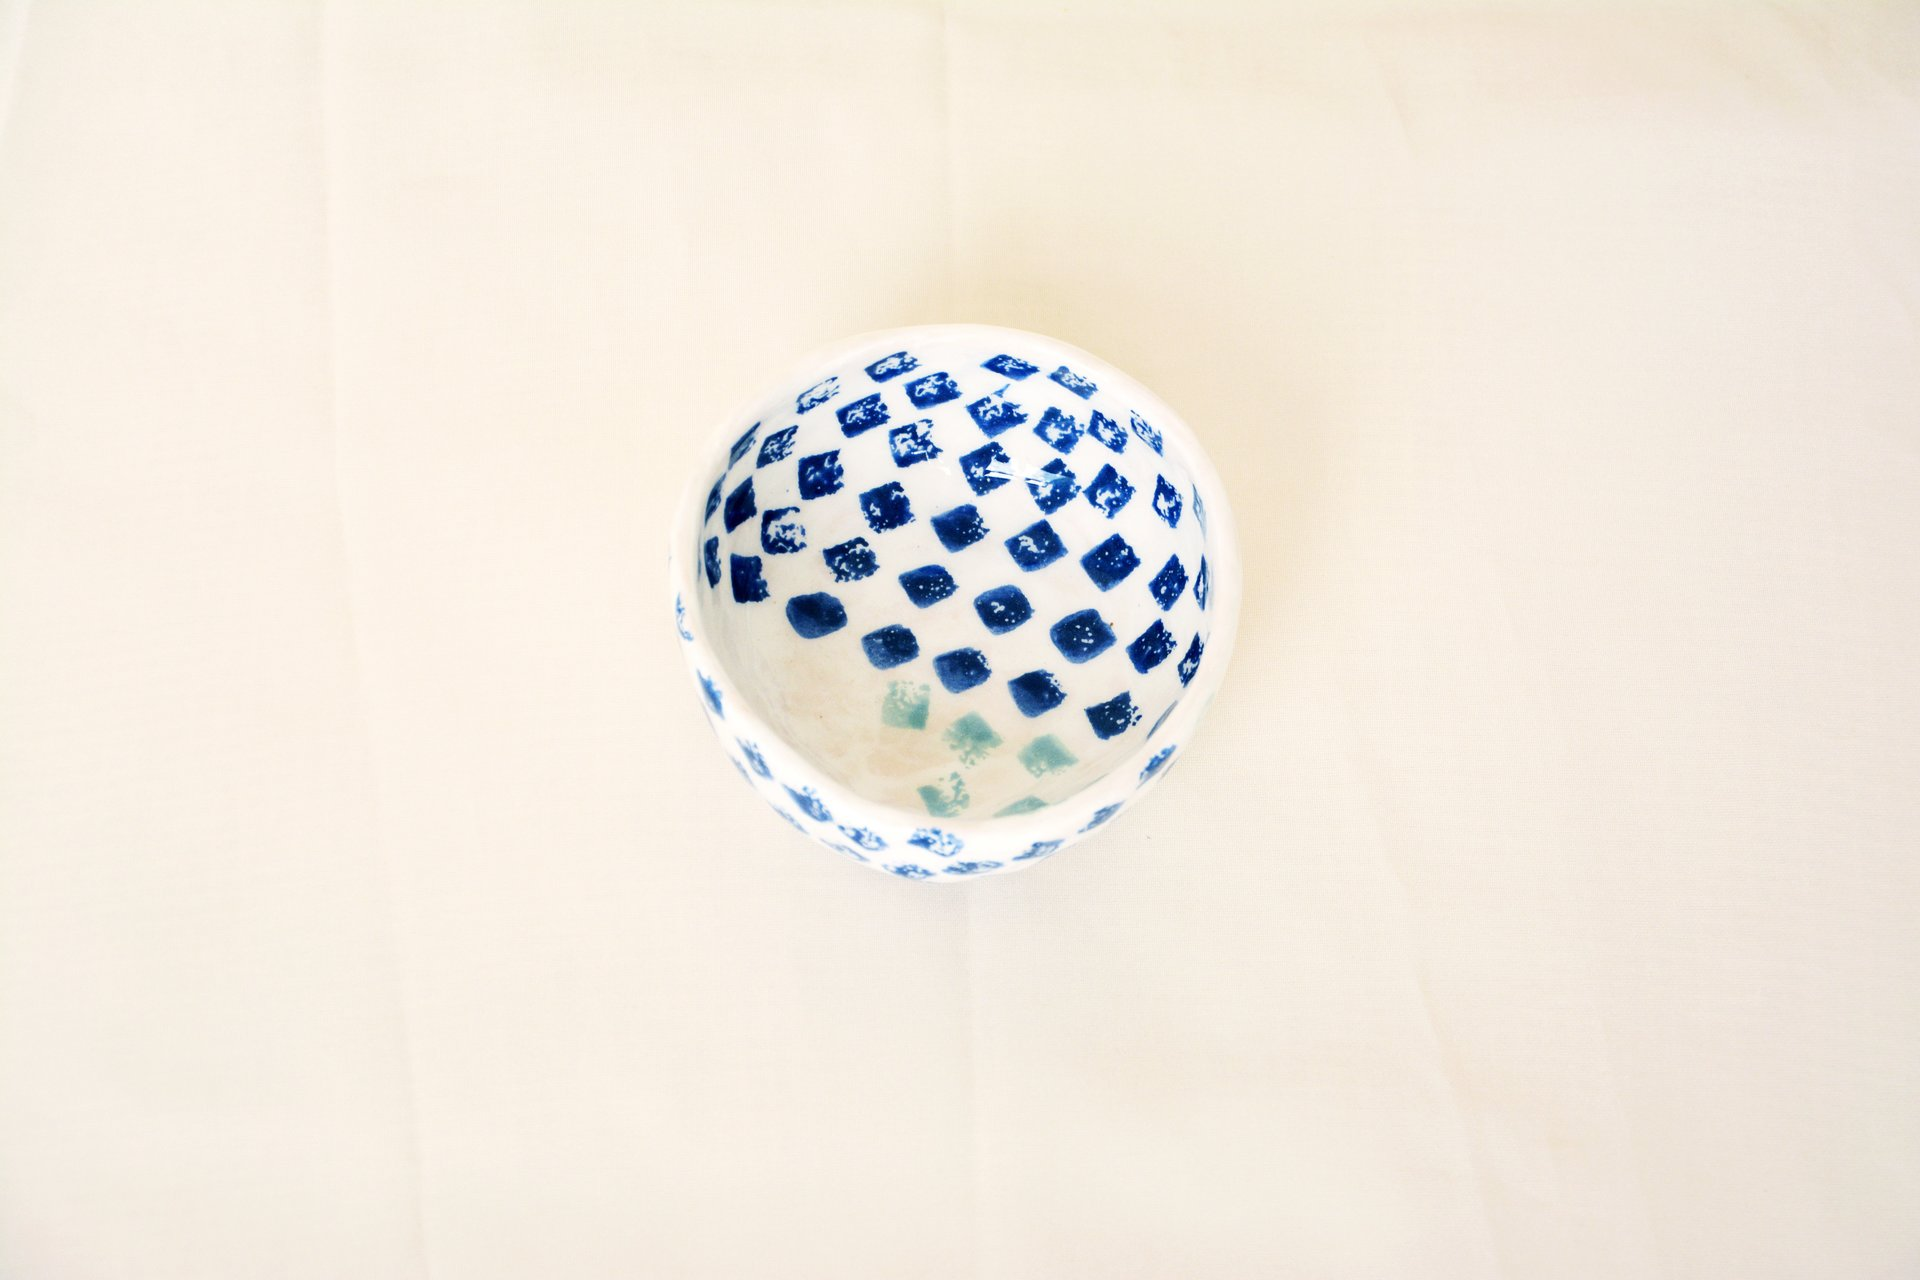 Blue squares on white - Сeramic Plates, height - 4 cm, diameter - 9.5 cm, photo 1 of 4.